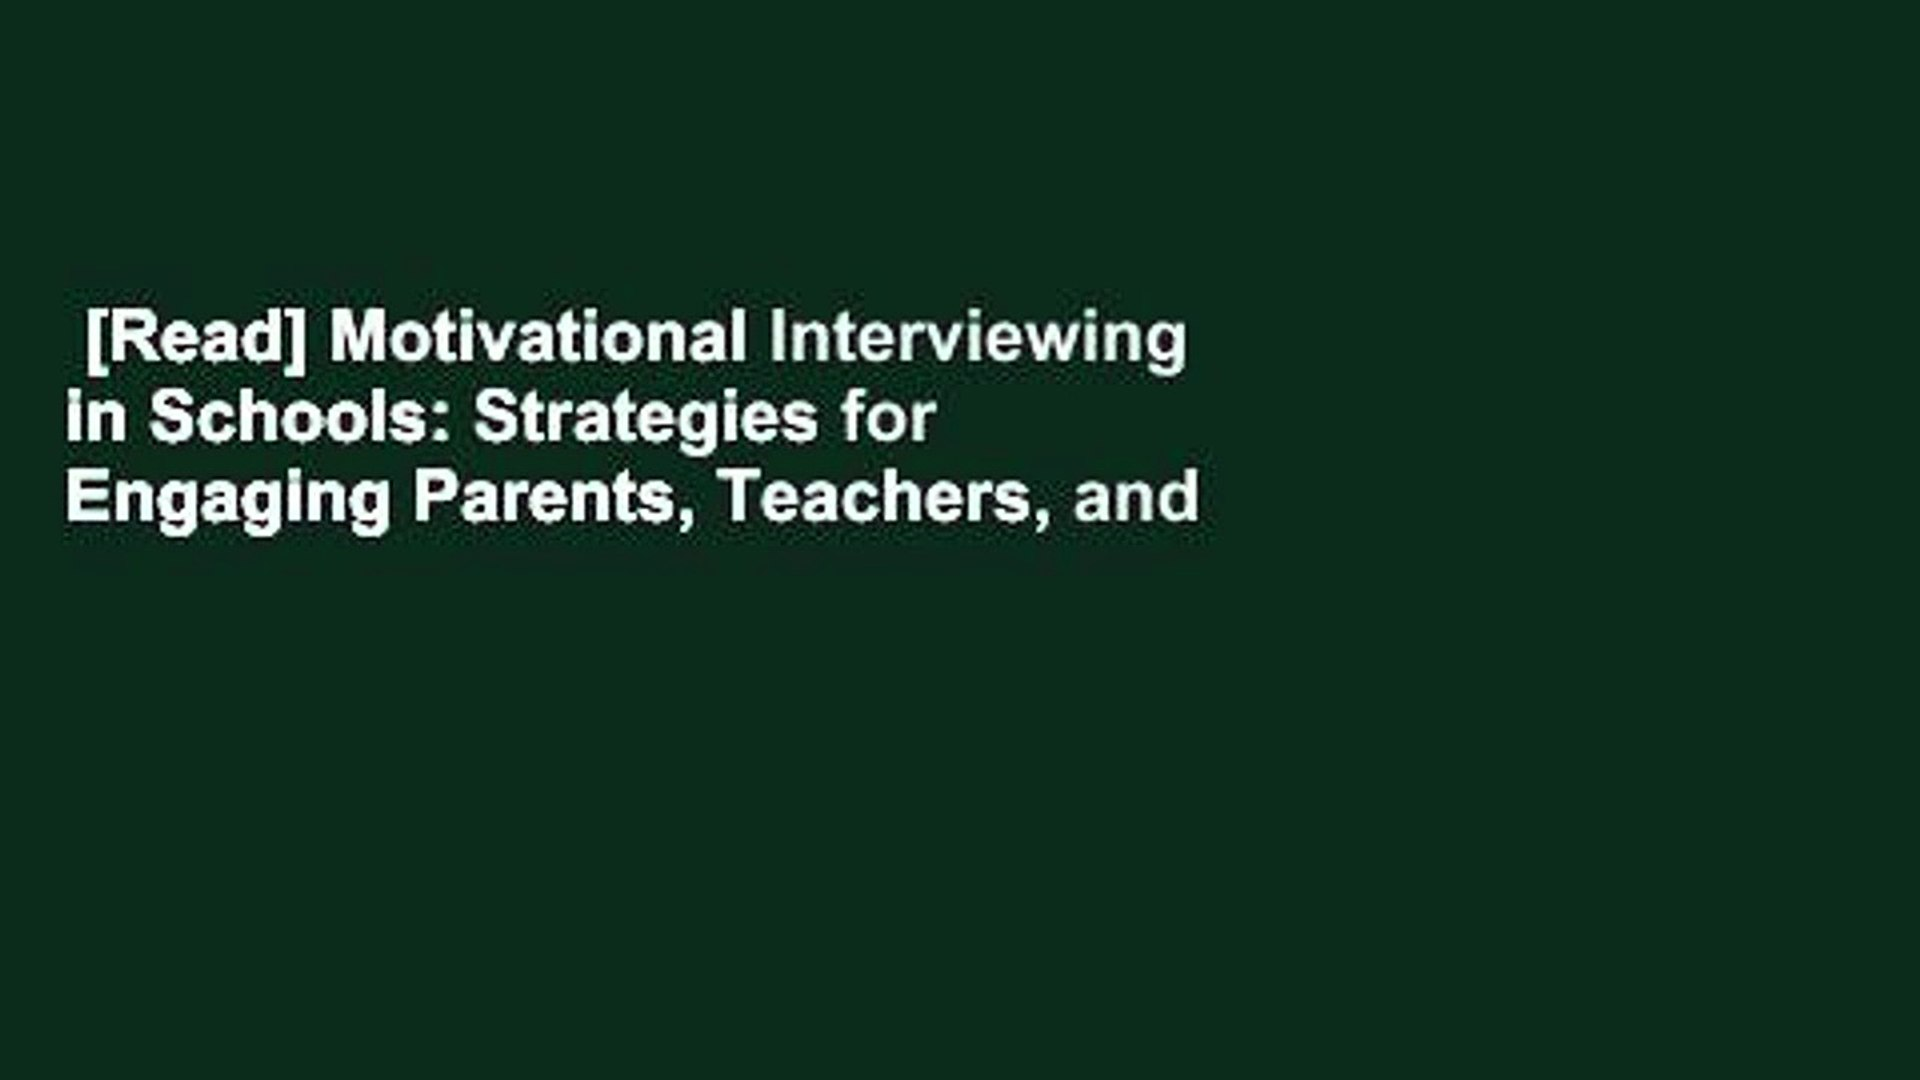 [Read] Motivational Interviewing in Schools: Strategies for Engaging Parents, Teachers, and